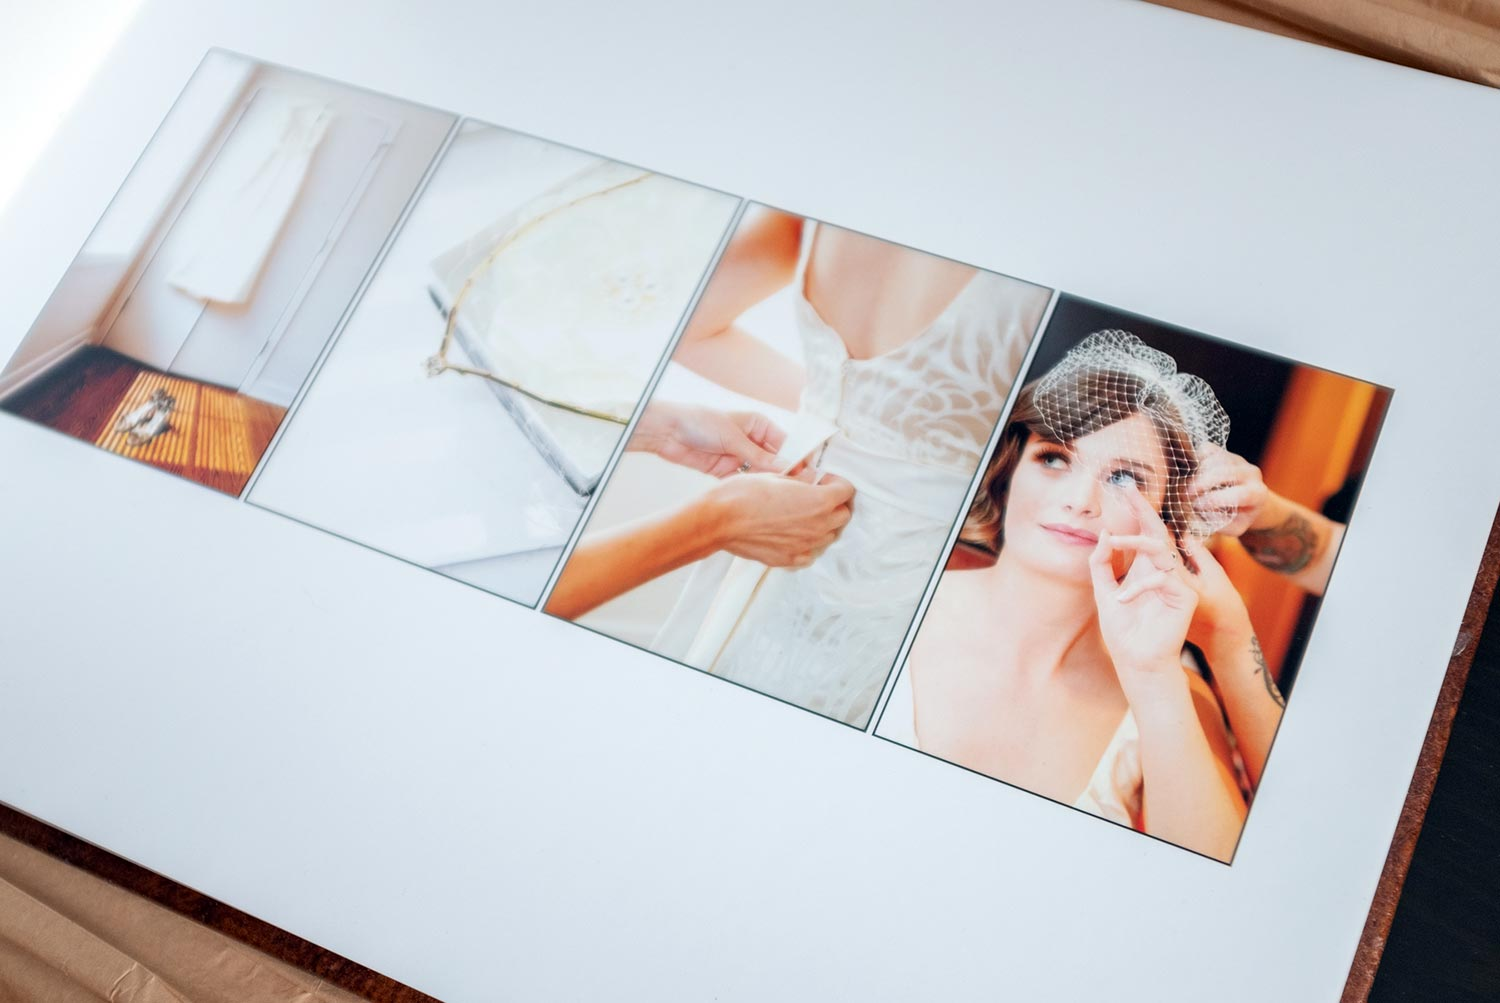 Personalized wedding photo album images are mounted on a high quality cardboard stock. Saint Paul Wedding Photographer